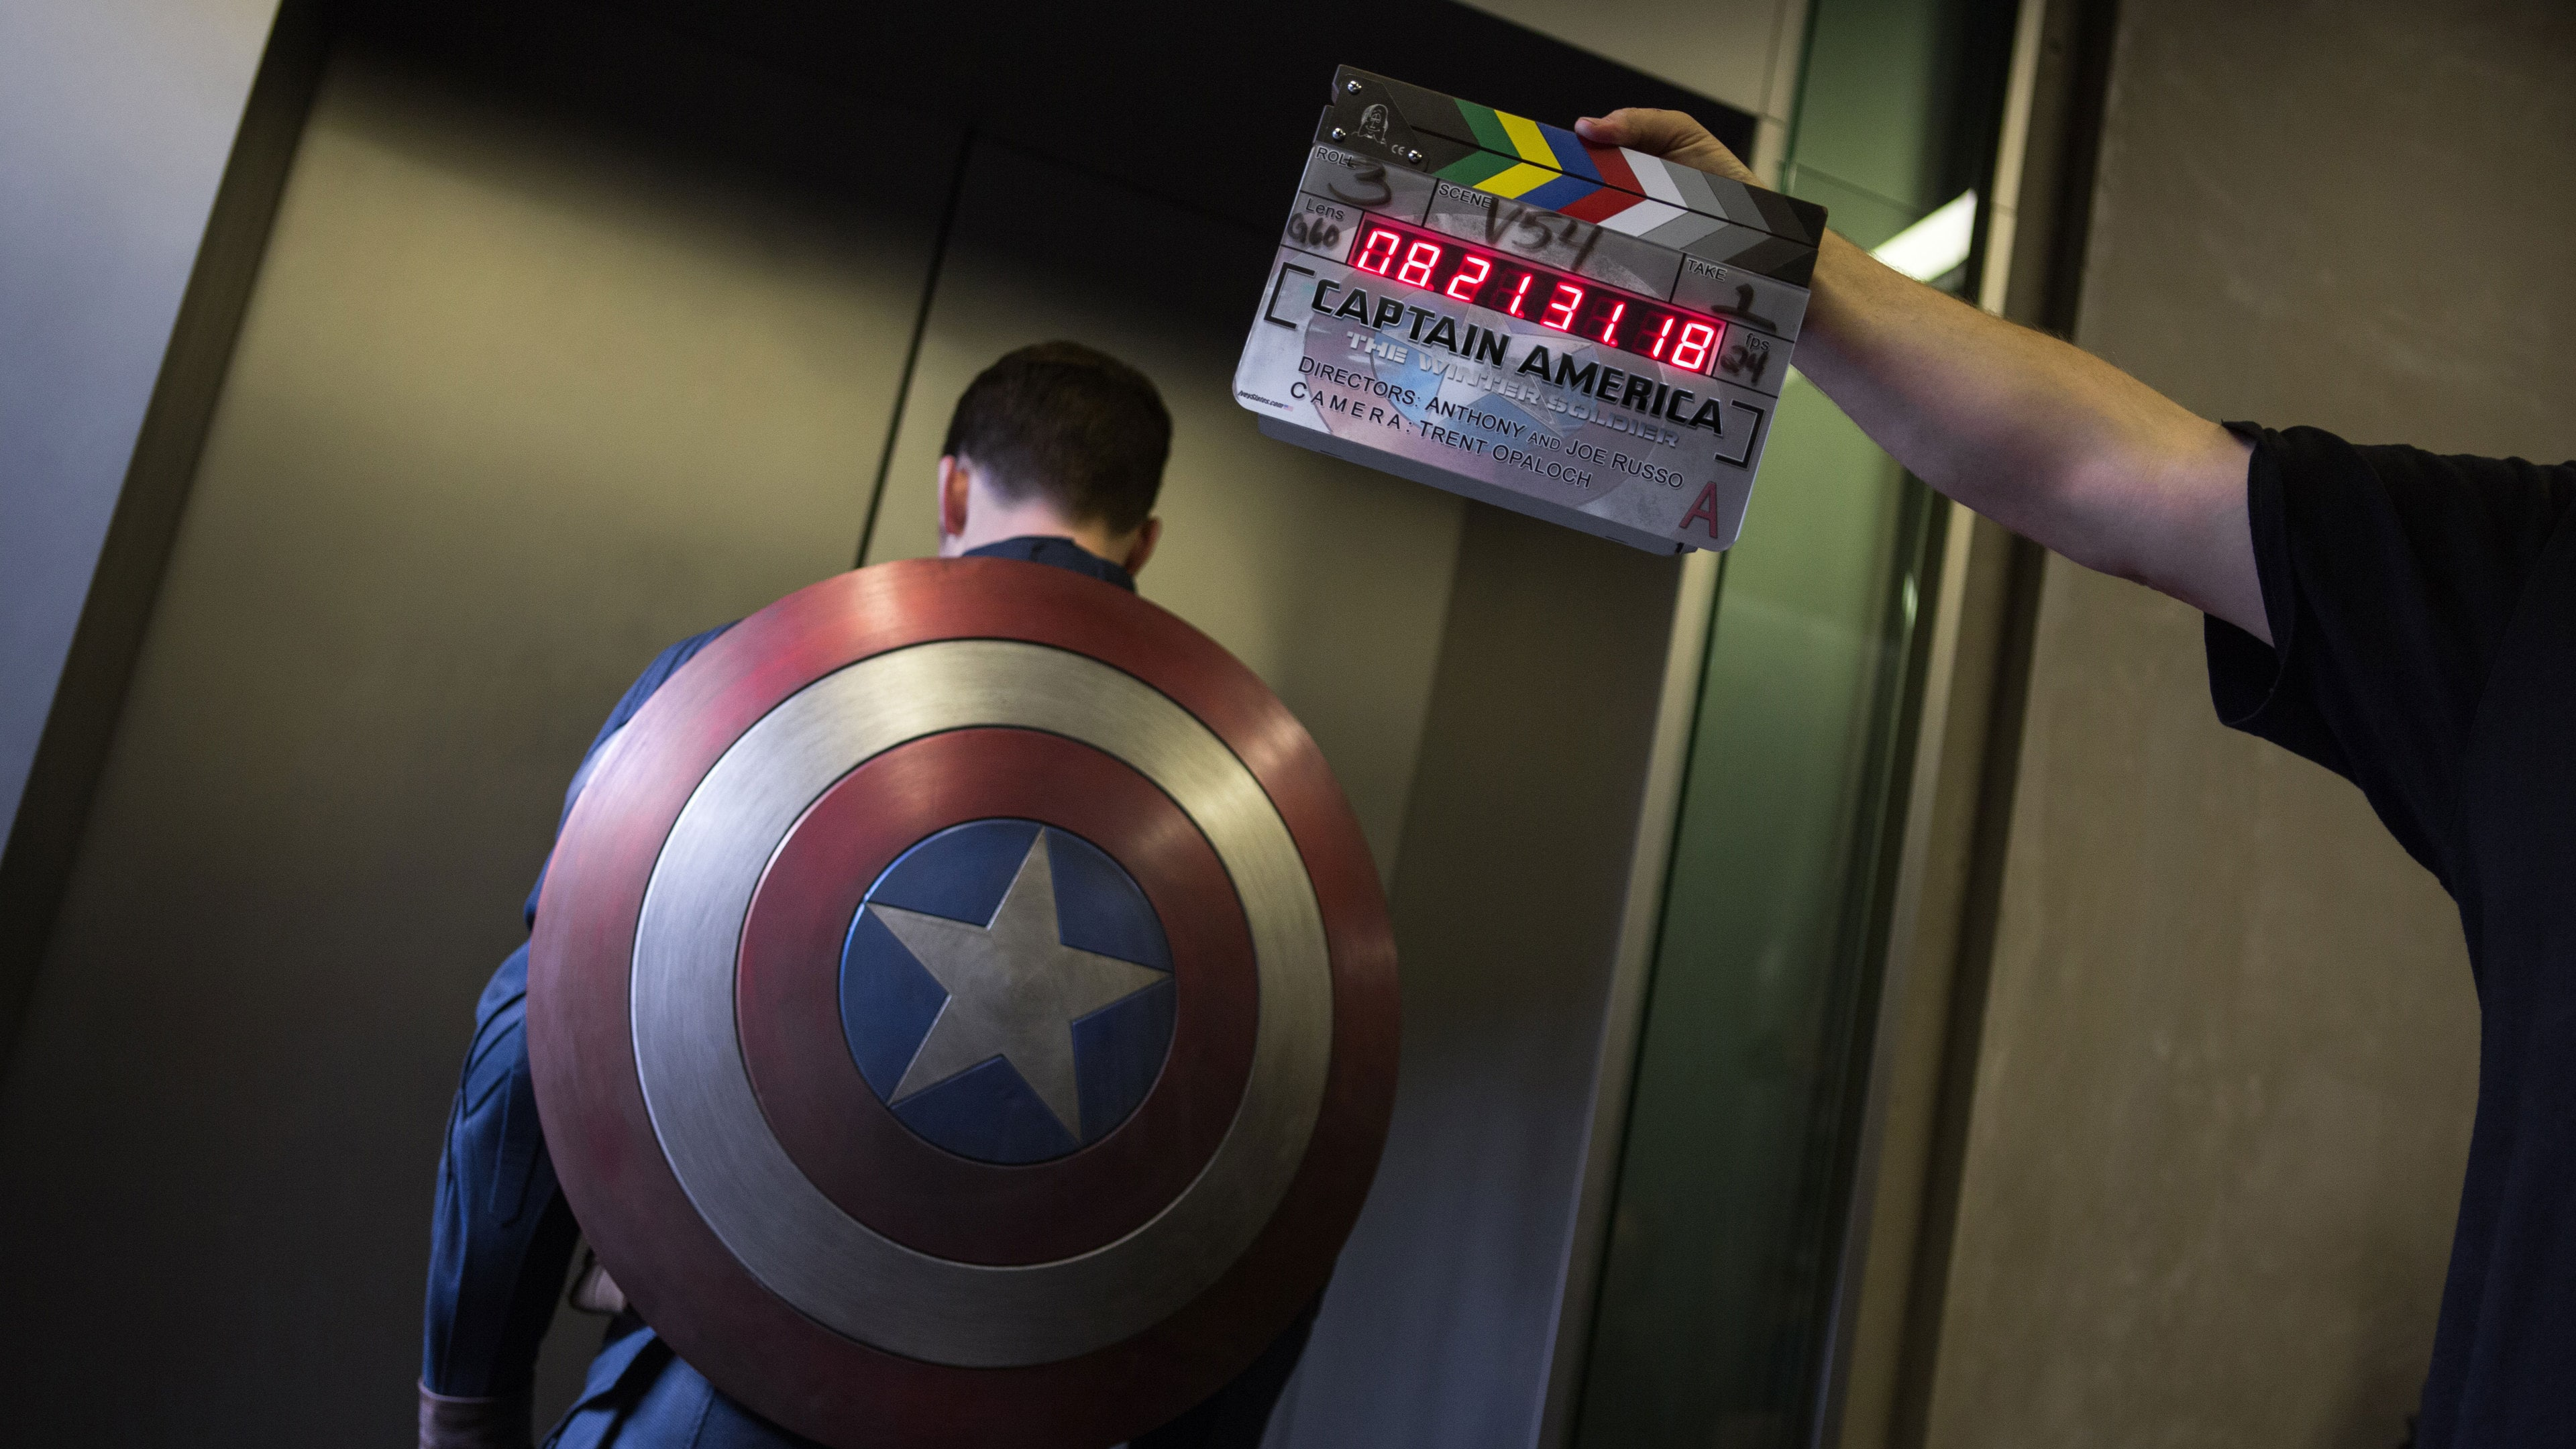 Actor Chris Evans (Steve Rogers/Captain America) behind-the-scenes standing by an elevator in Captain America: The Winter Soldier.